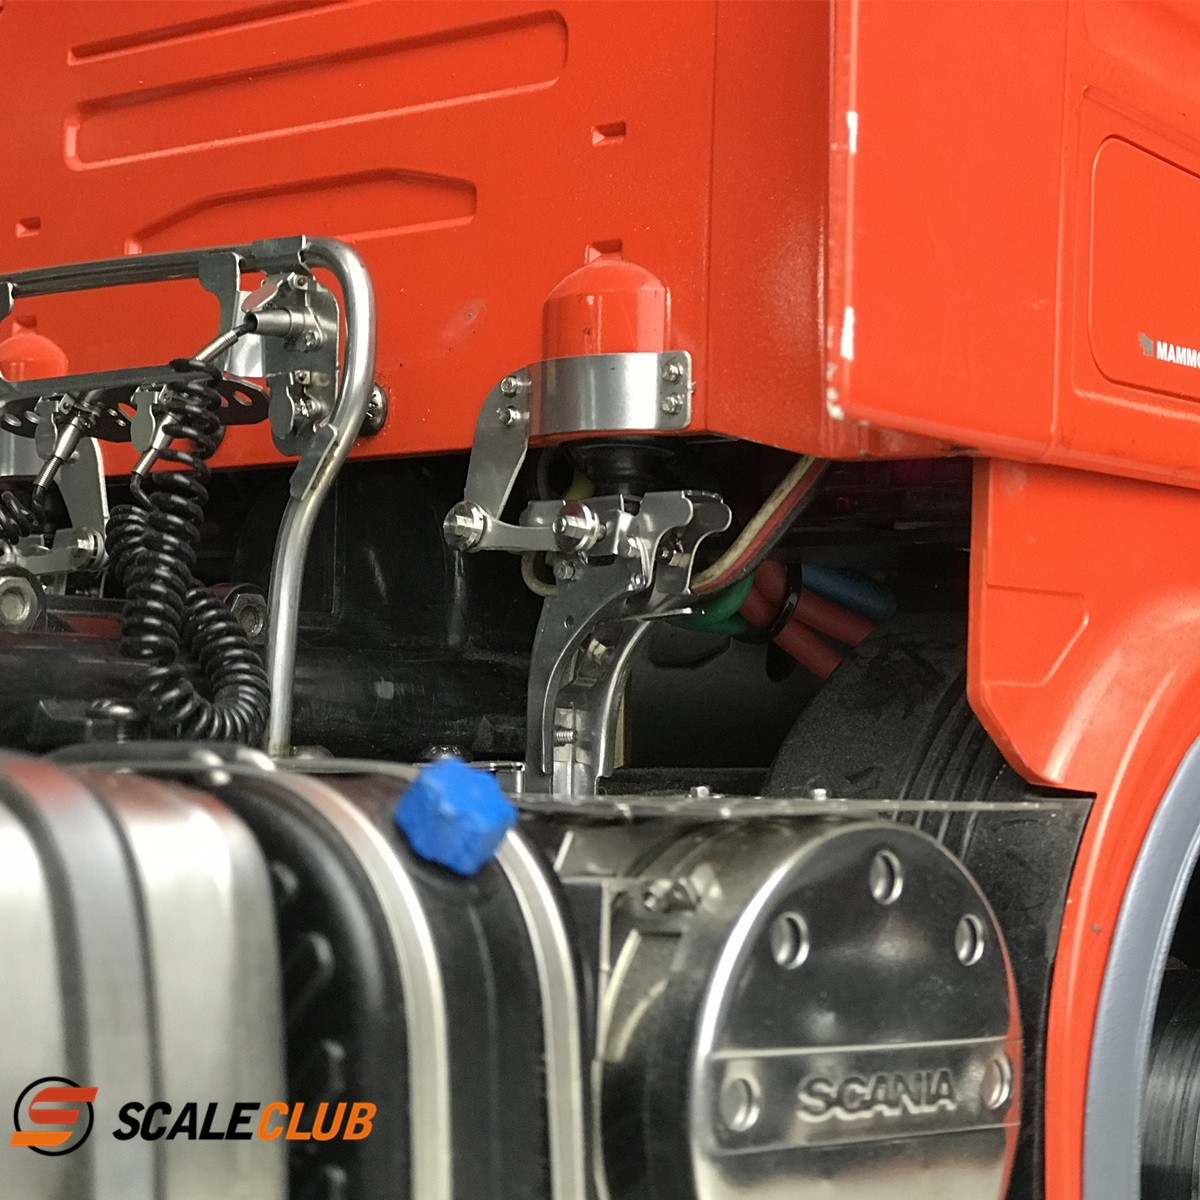 SCALECLUB  Scania  Simulated Metal Head Button